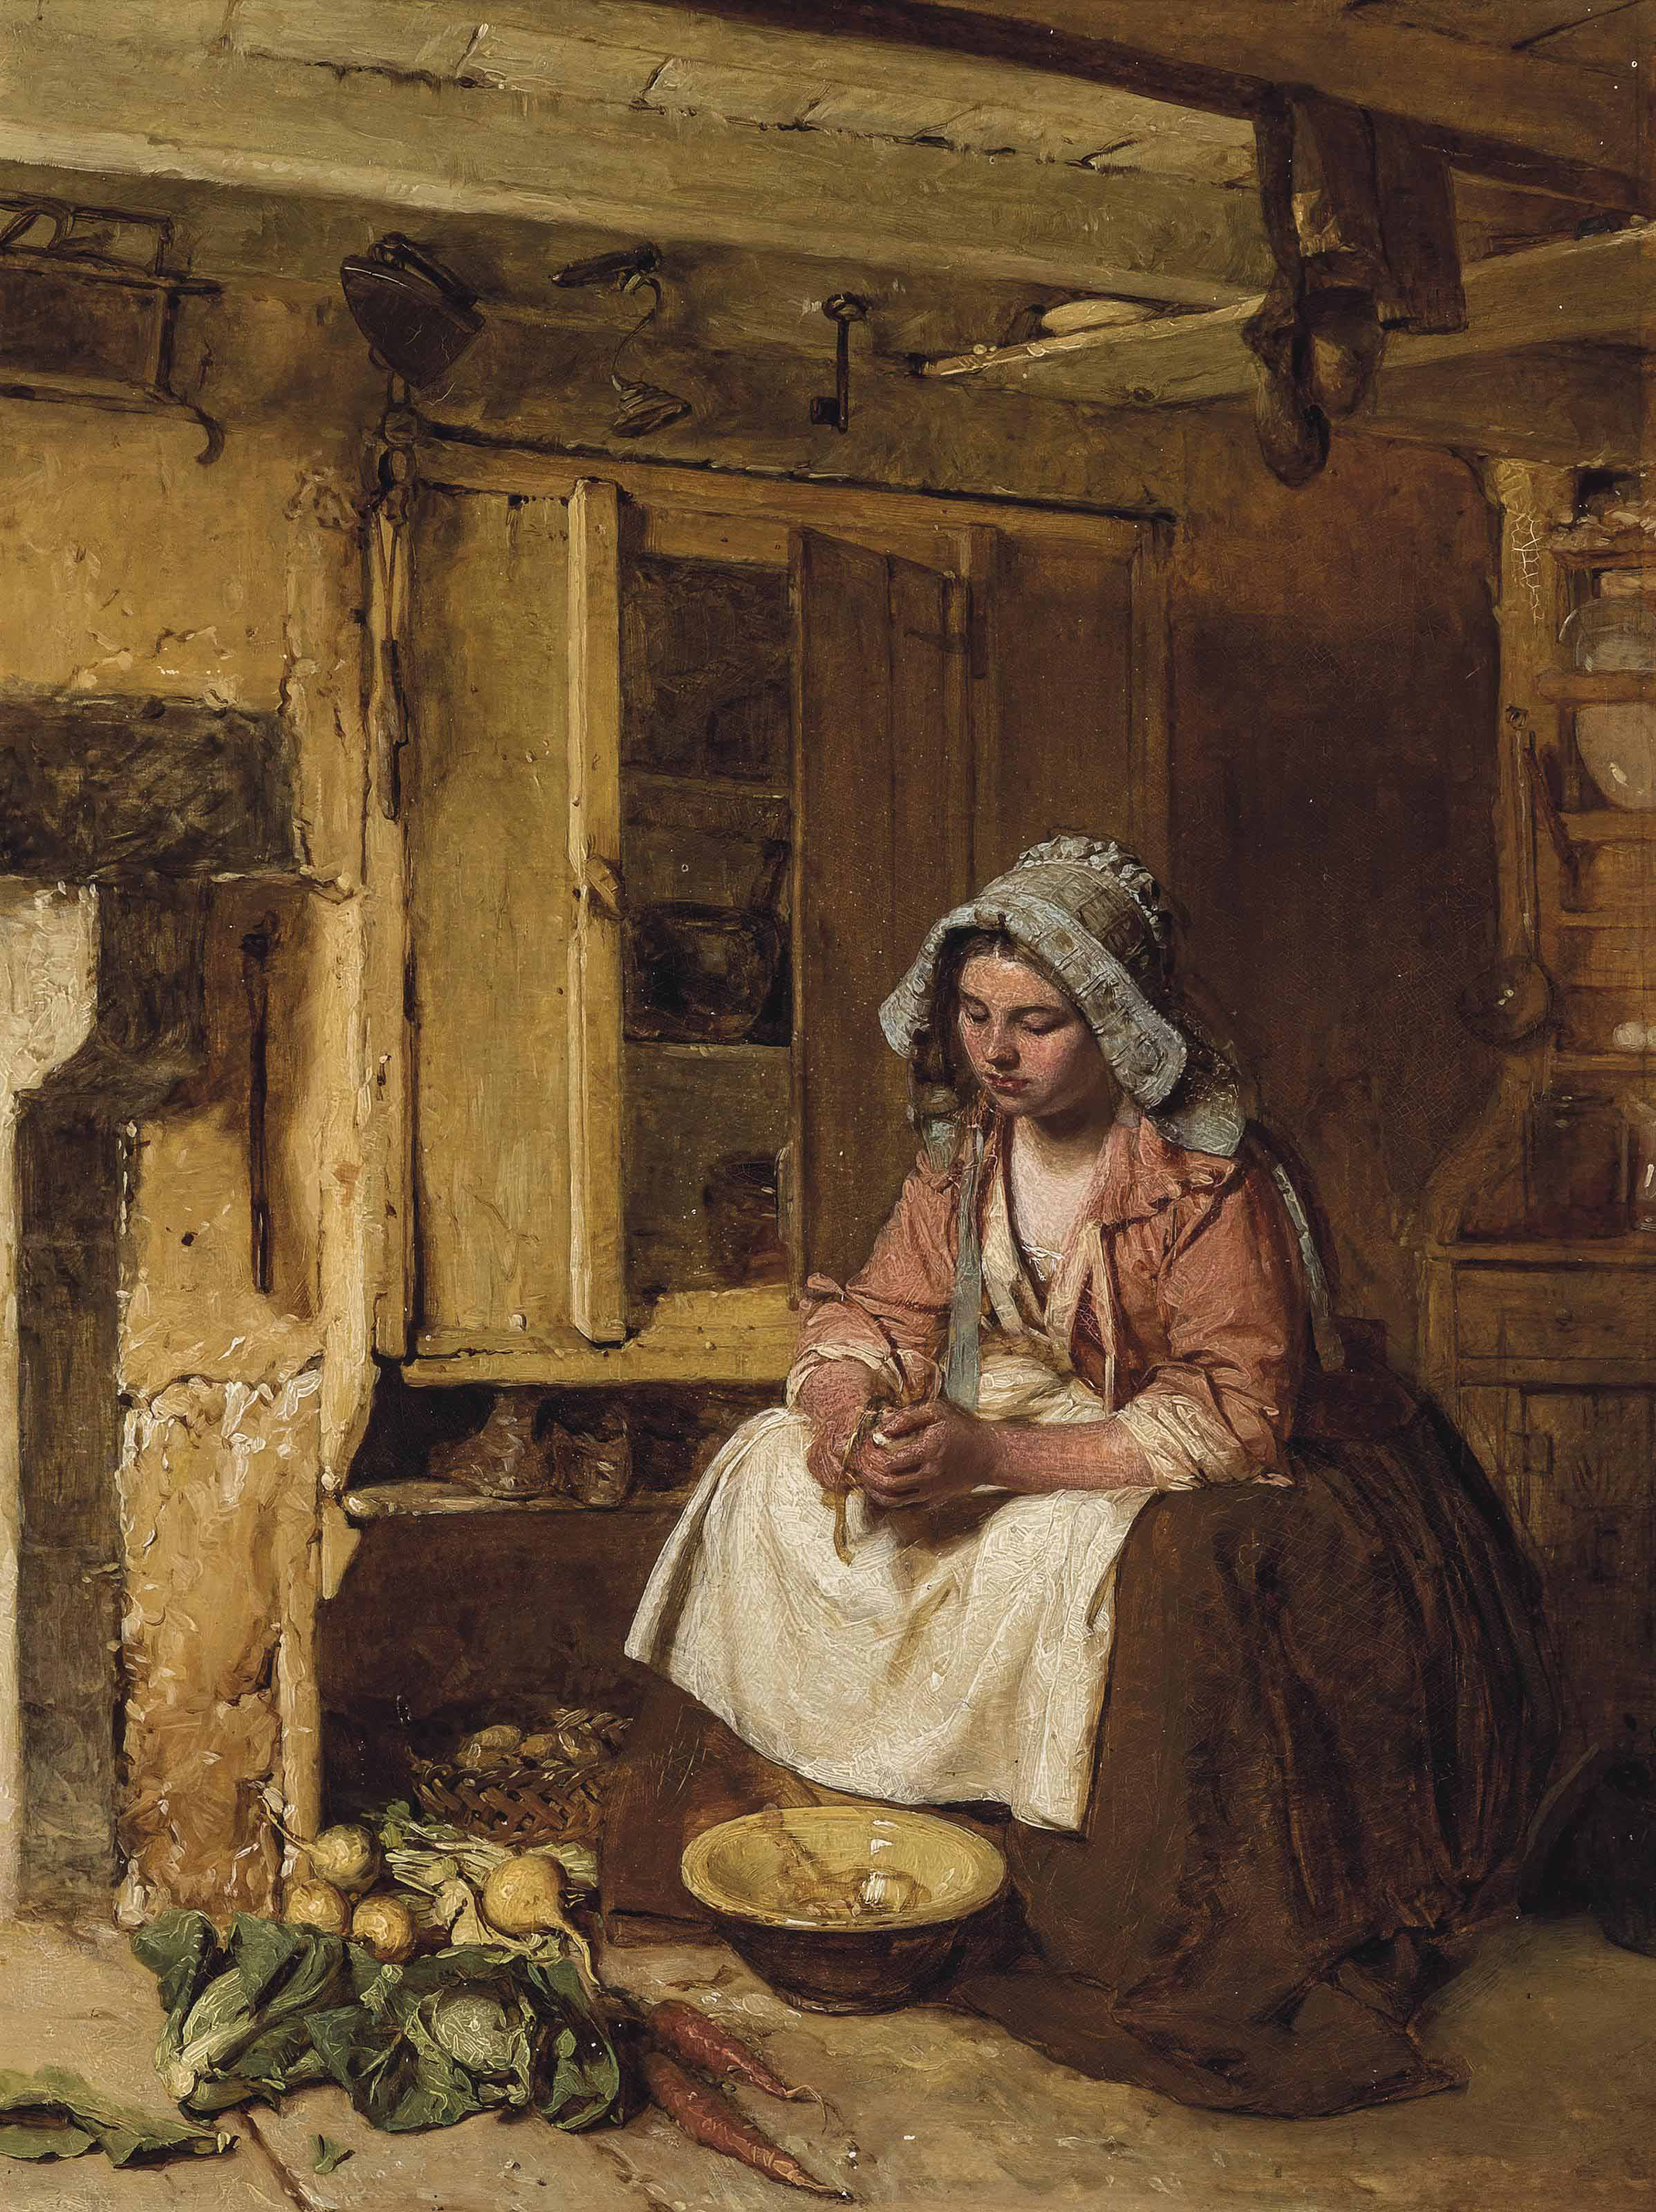 The young housewife